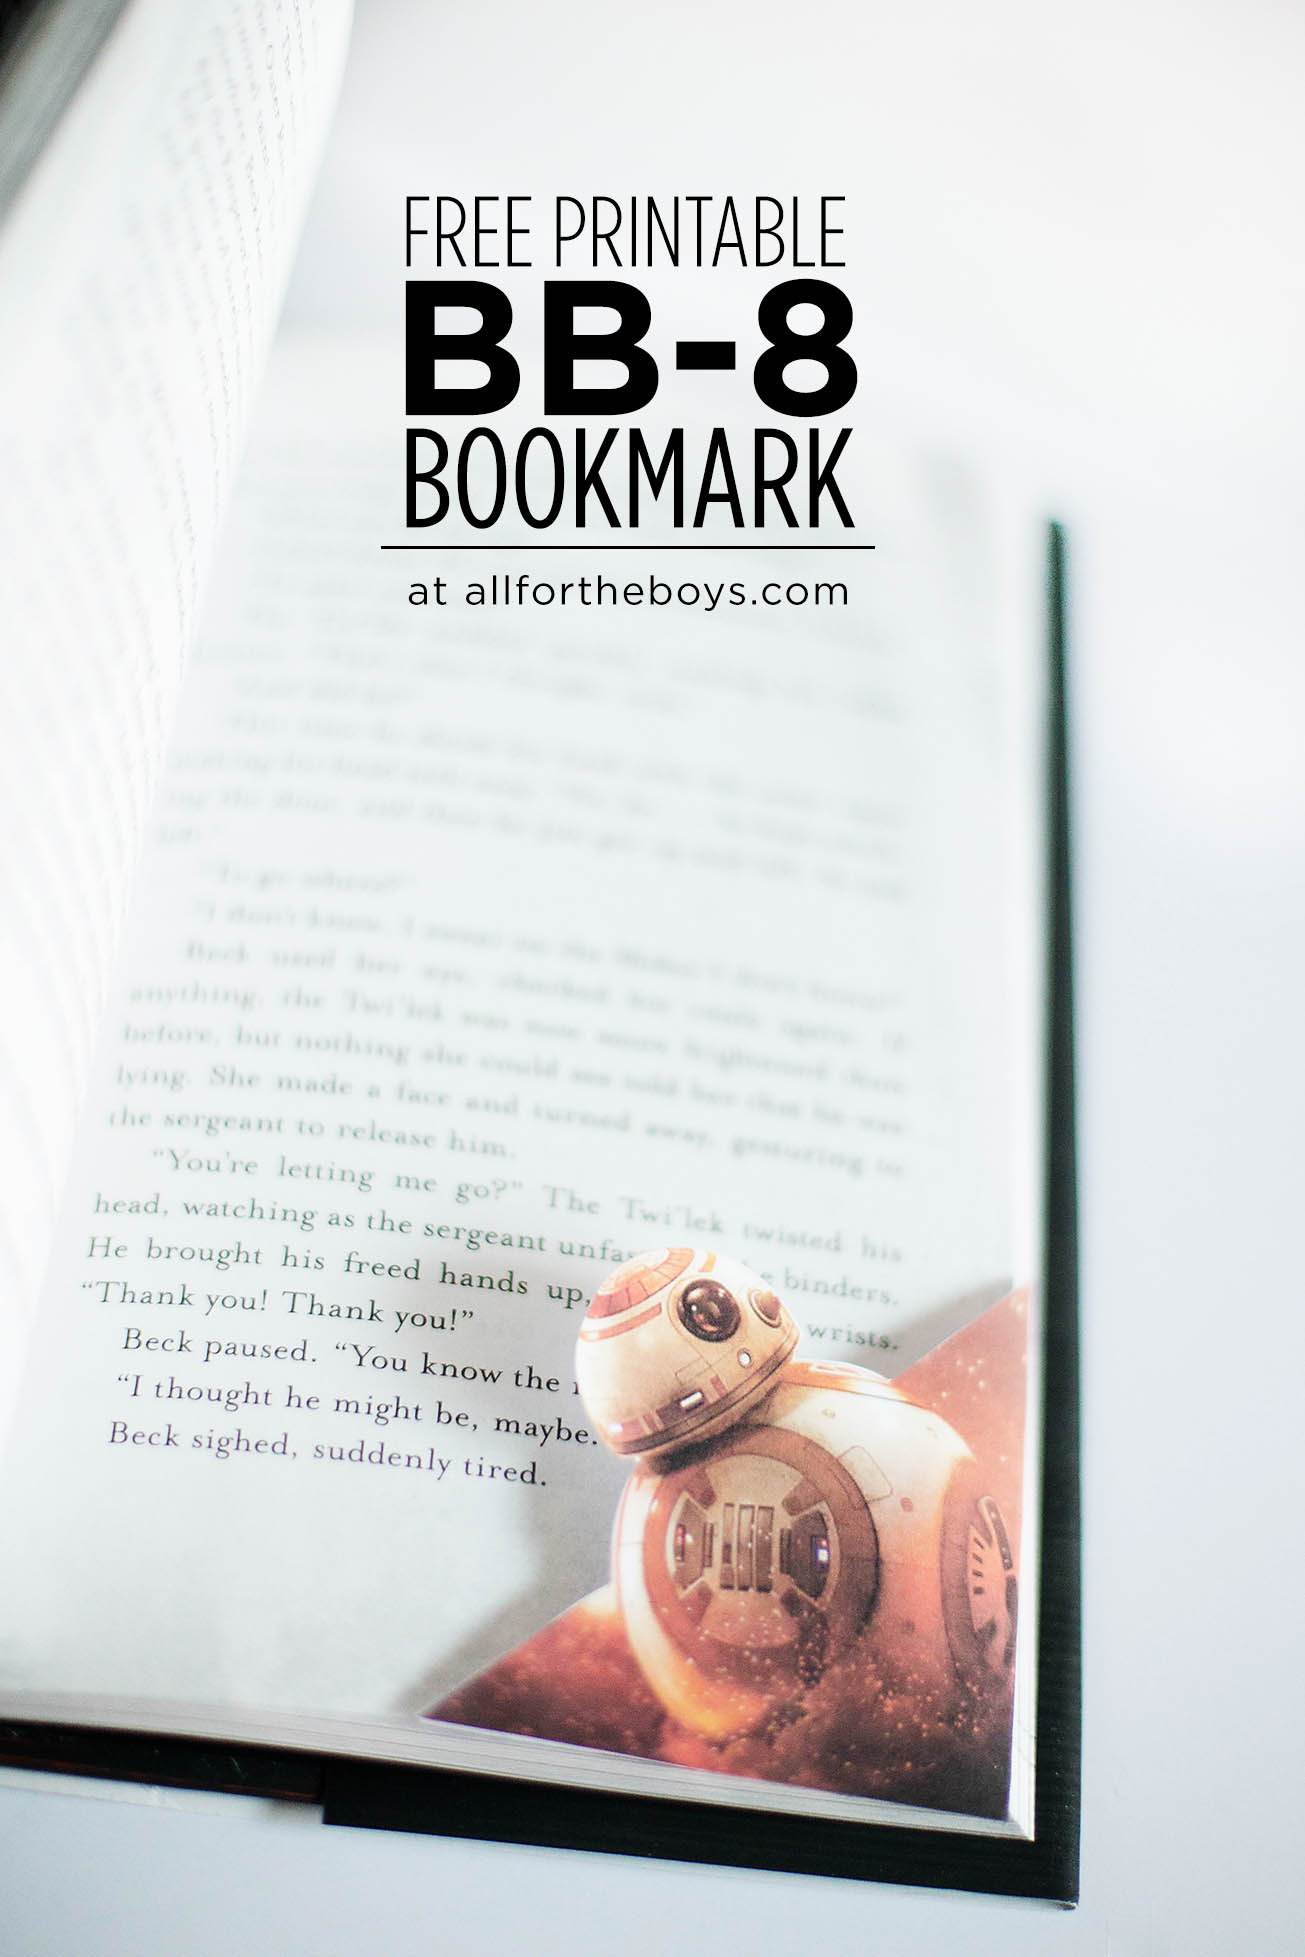 Free Printable Star Wars BB-8 Bookmark — All for the Boys